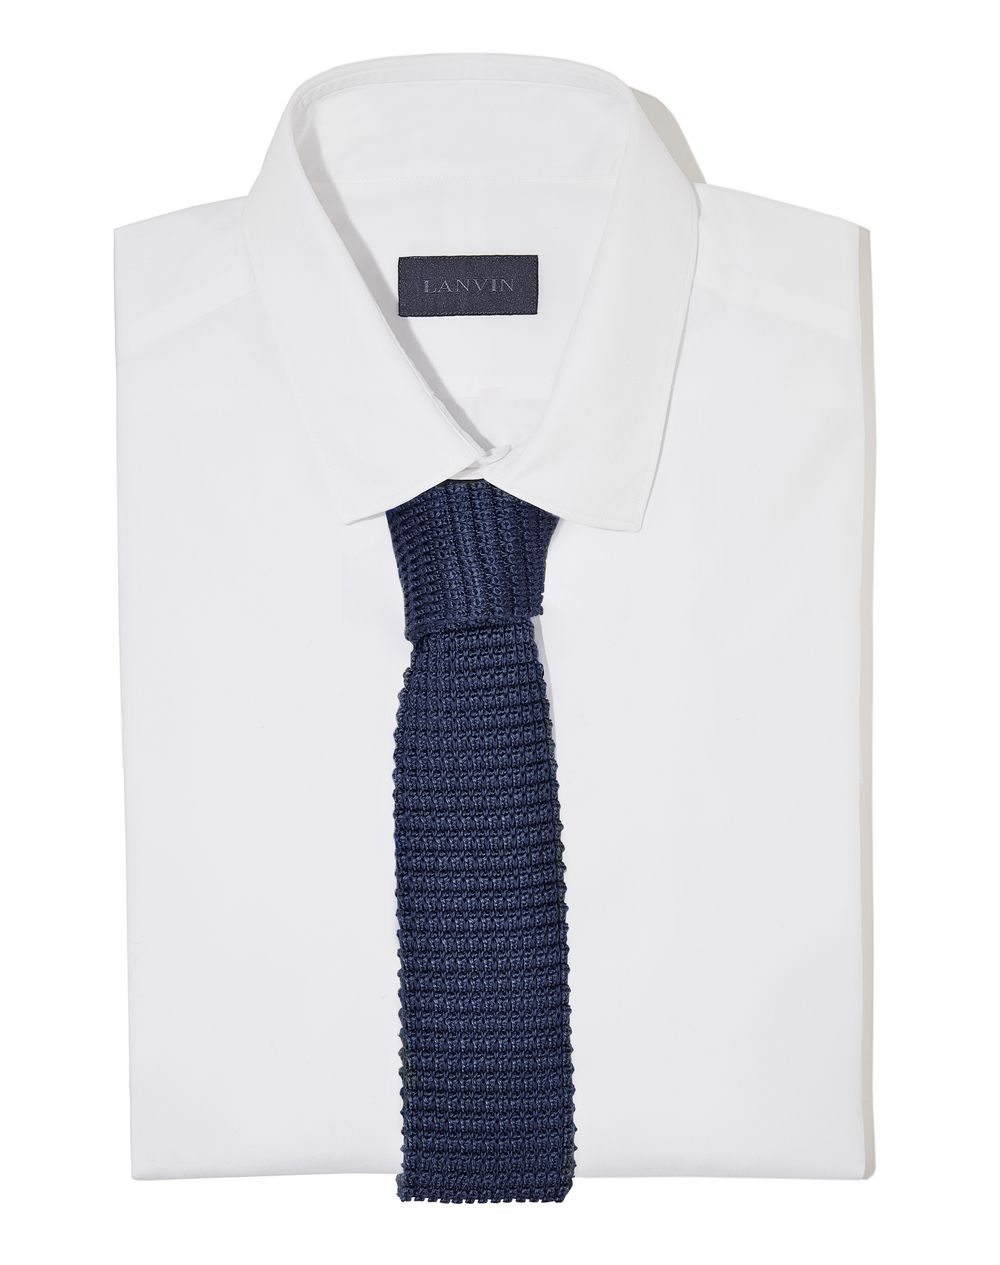 KNITTED NAVY BLUE SILK TIE - Lanvin